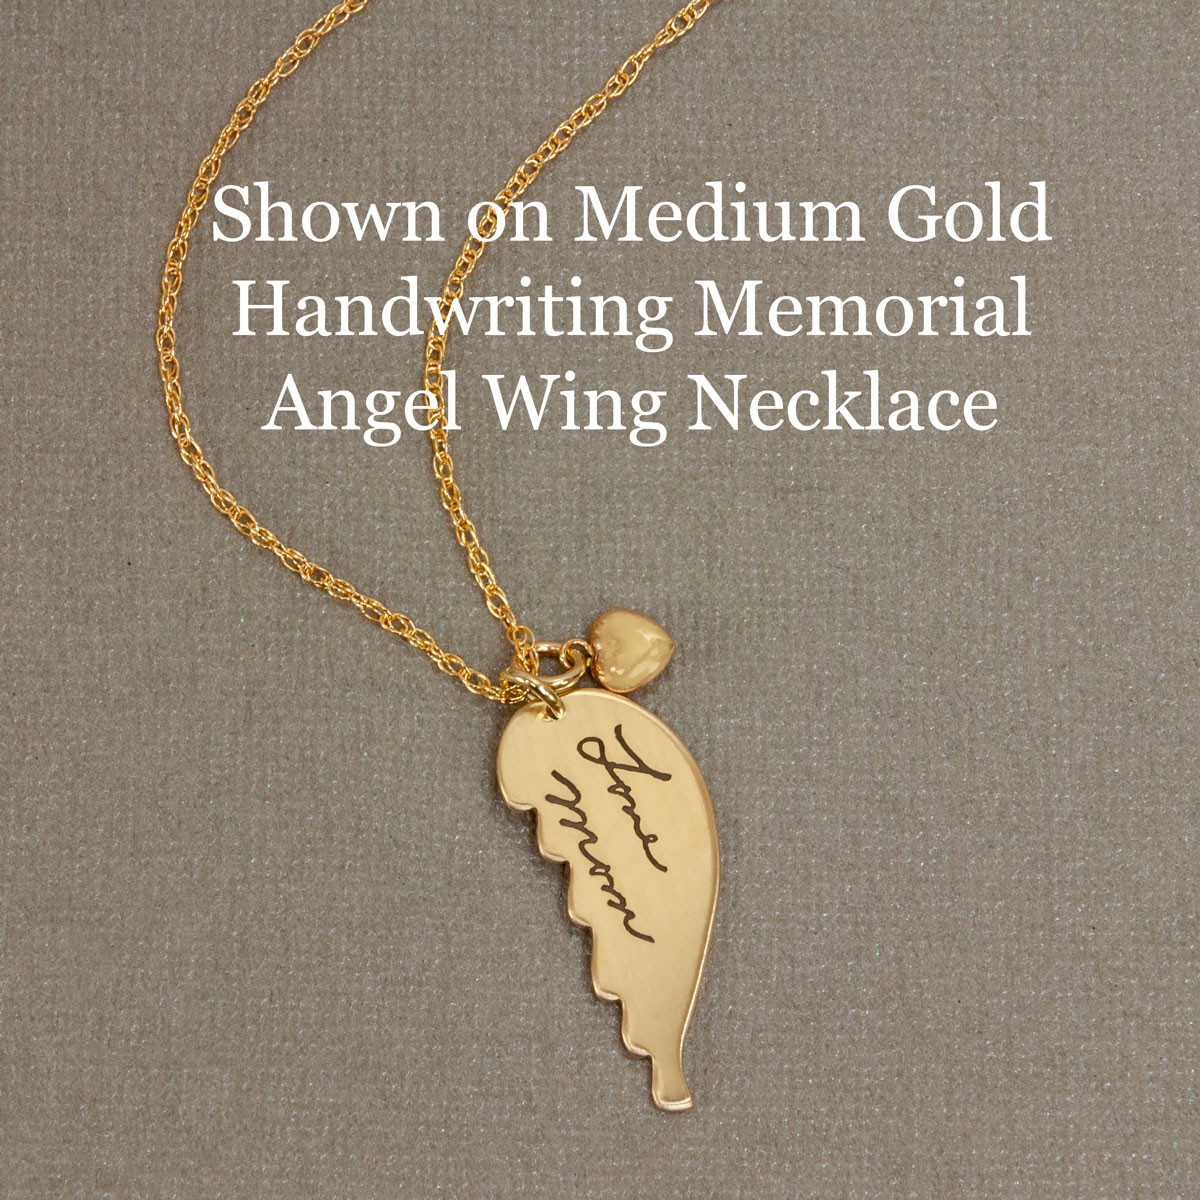 Puffed Heart shown on Gold Handwriting Angel Wing Necklace